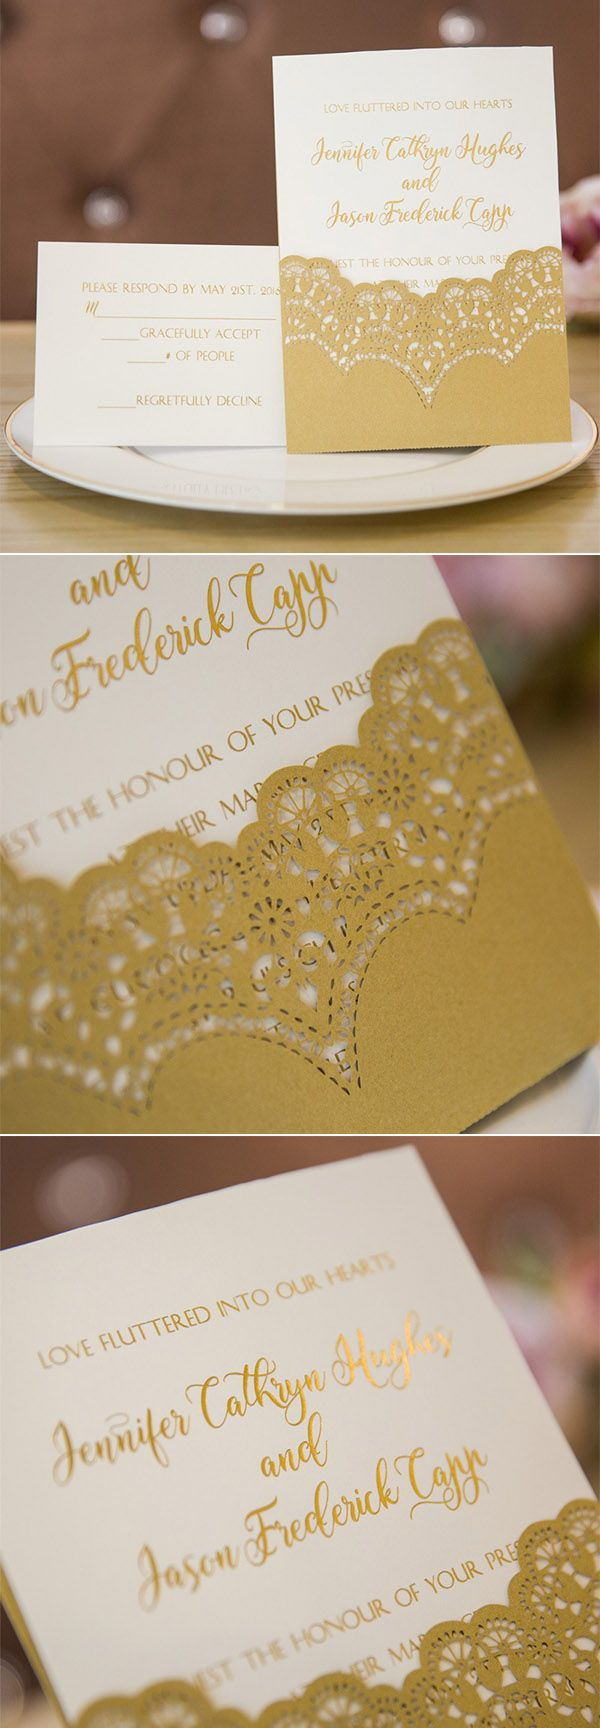 diamond wedding invitations%0A Luxury Gold FoilStamped Lace Laser Cut Wedding Invites SWWS